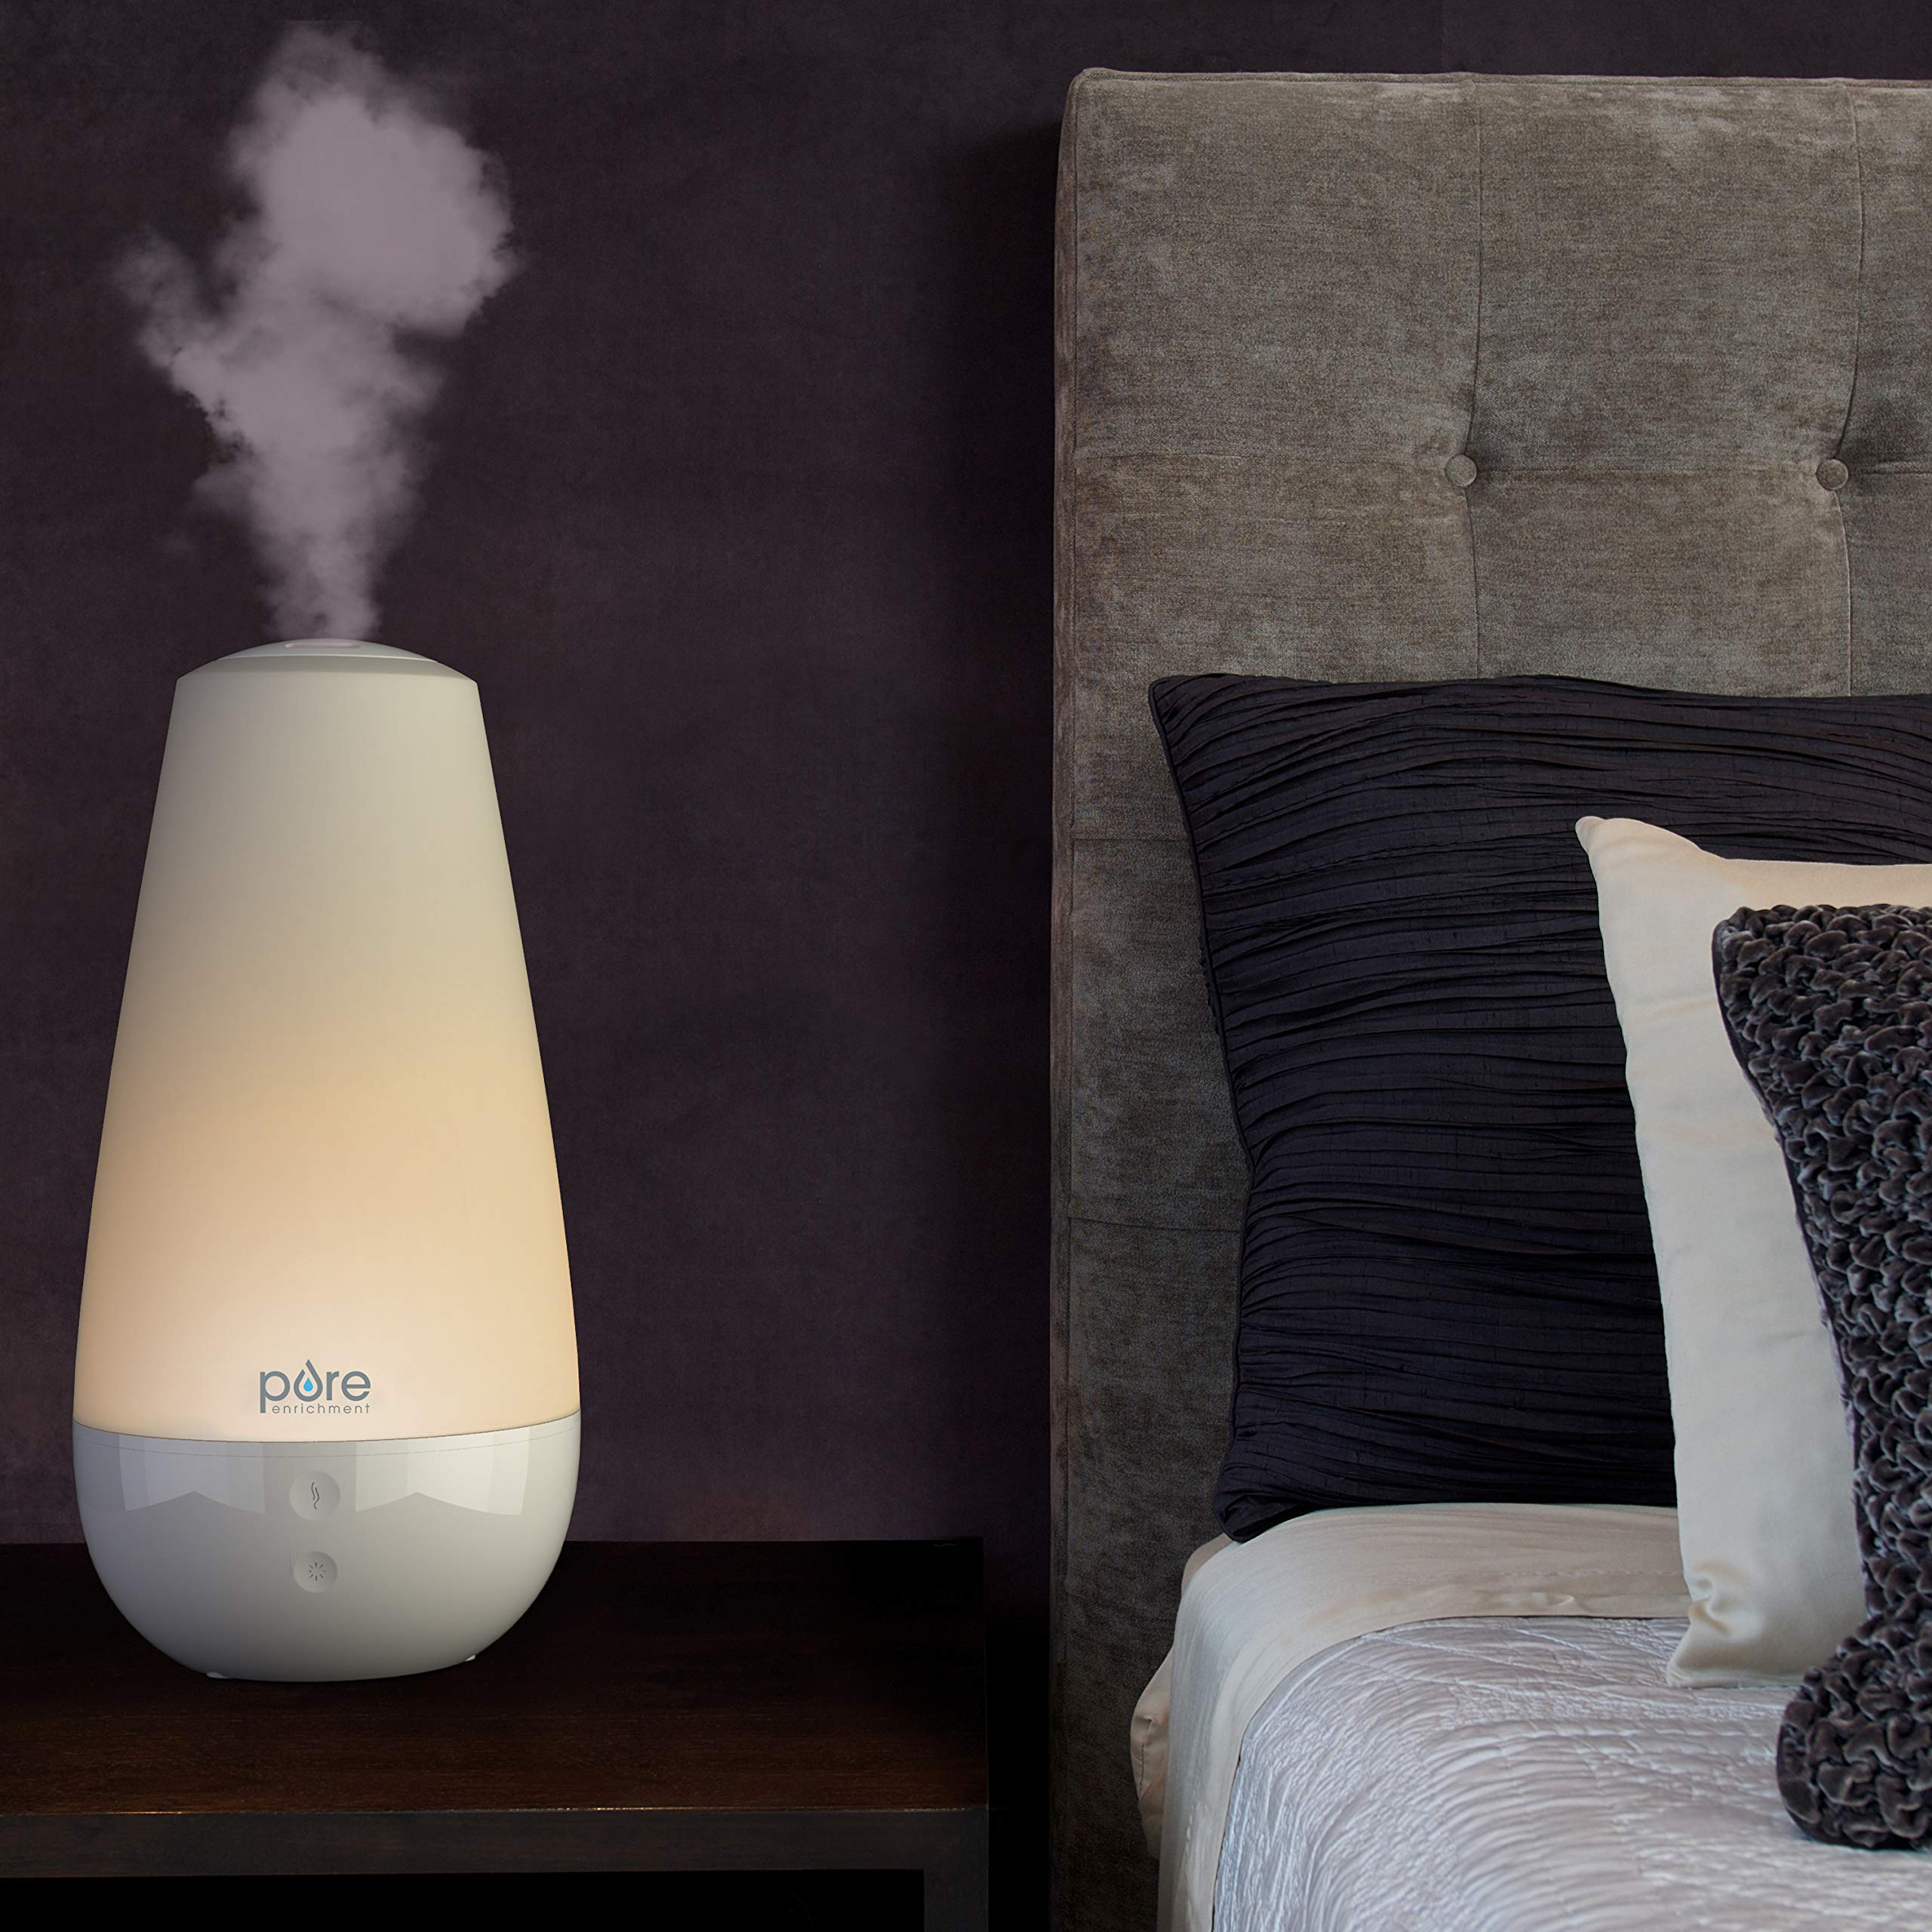 Pure Enrichment PureSpa XL - Extra-Large Premium Aroma Diffuser with 2,000ml Tank - 3-in-1 Unit Also Functions as a Single-Room Humidifier and Intelligent Mood Light by Pure Enrichment (Image #6)